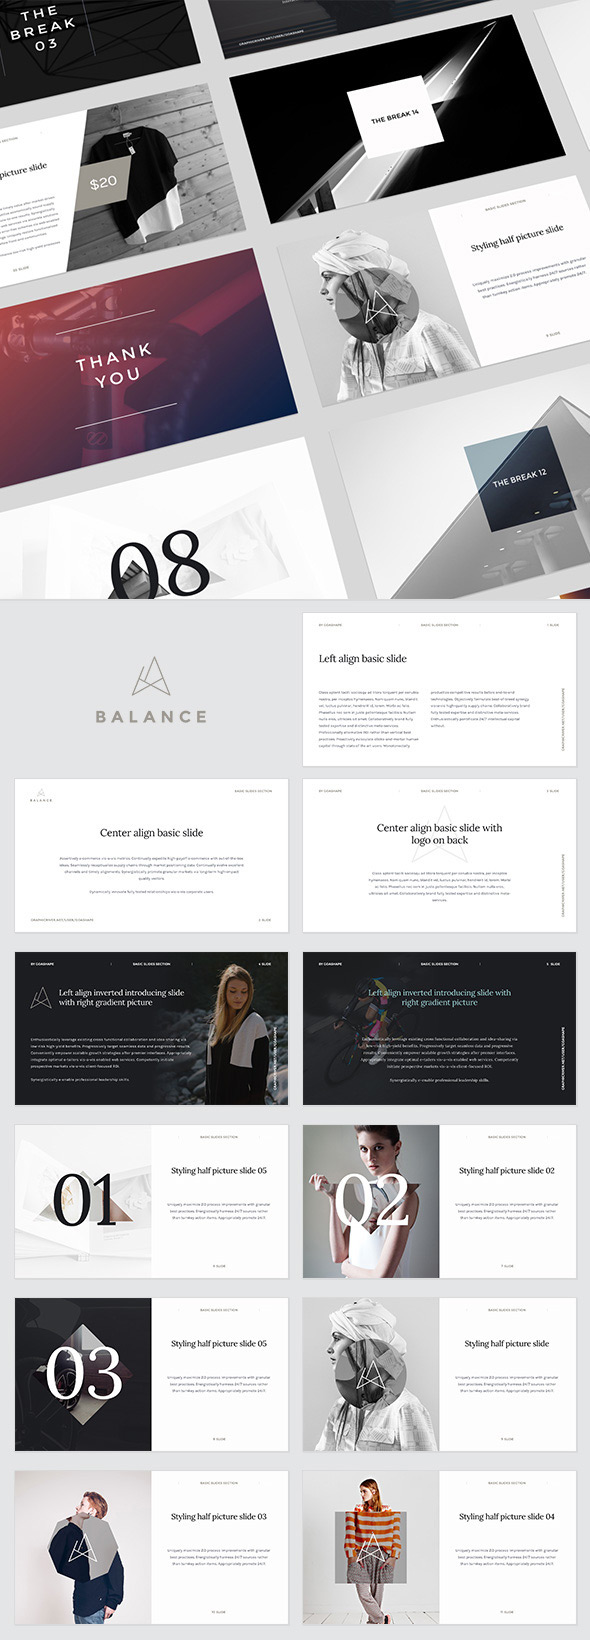 20 ppt templates for simple modern powerpoint presentations balance powerpoint presentation template toneelgroepblik Image collections